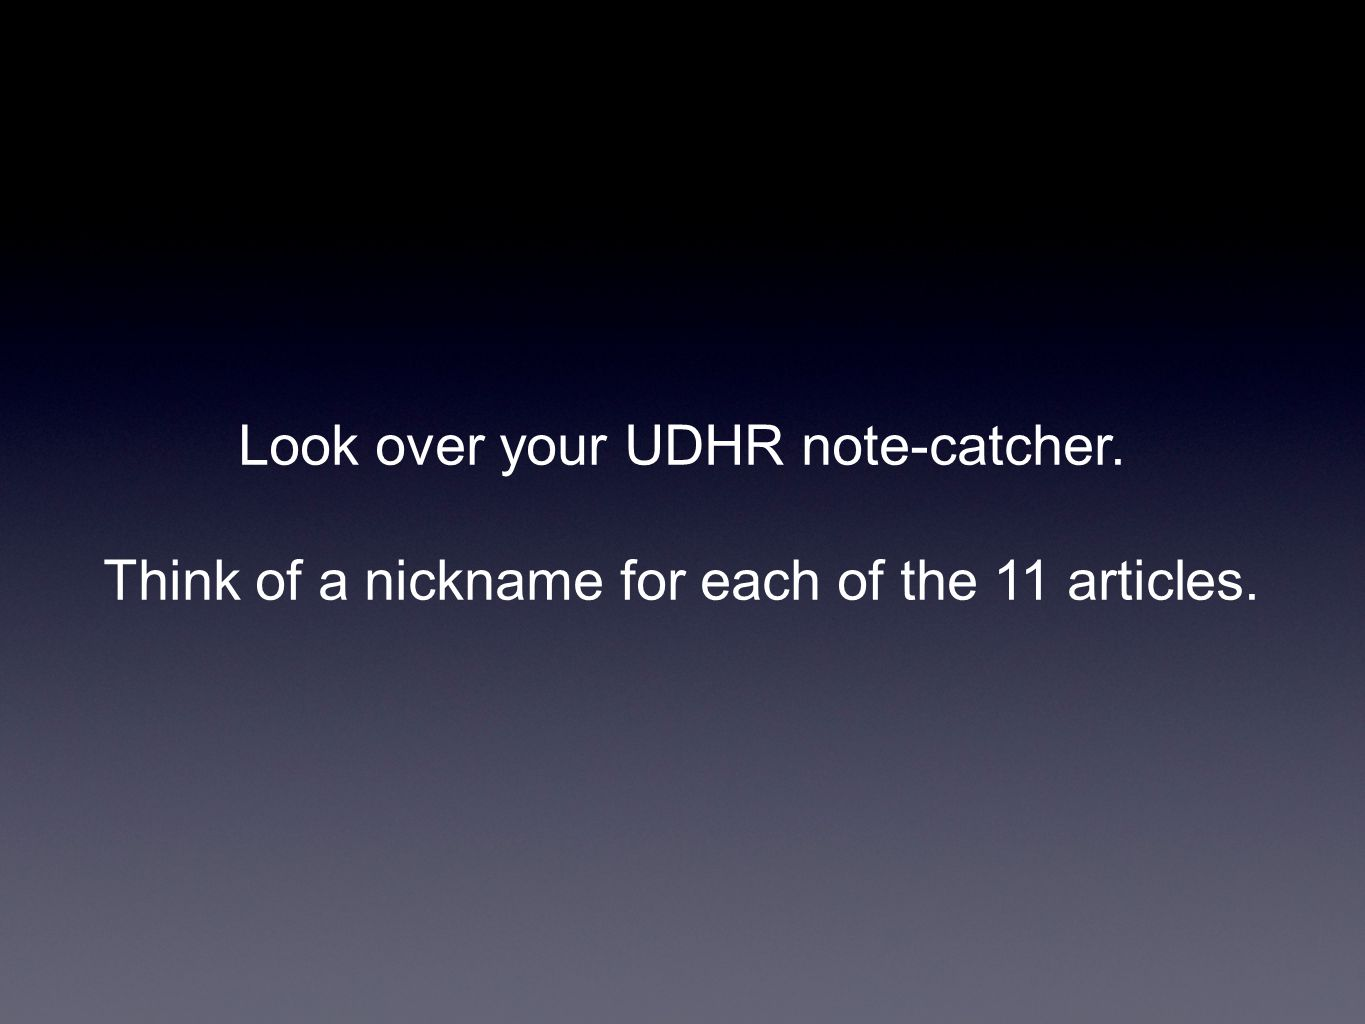 Look over your UDHR note-catcher.